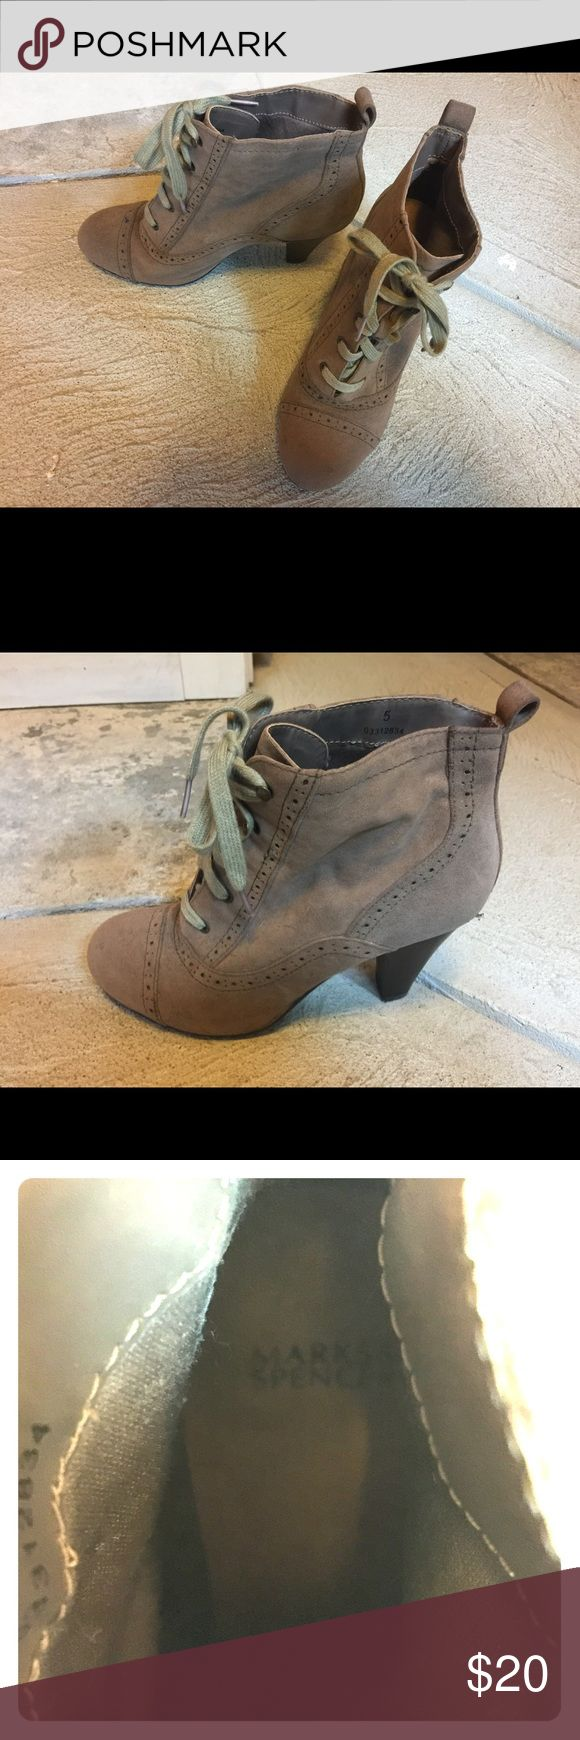 Heeled lacy boot Fun and comfortable laced heeled boot! Barely worn, purchased in the U.K. marks and spencer Shoes Ankle Boots & Booties